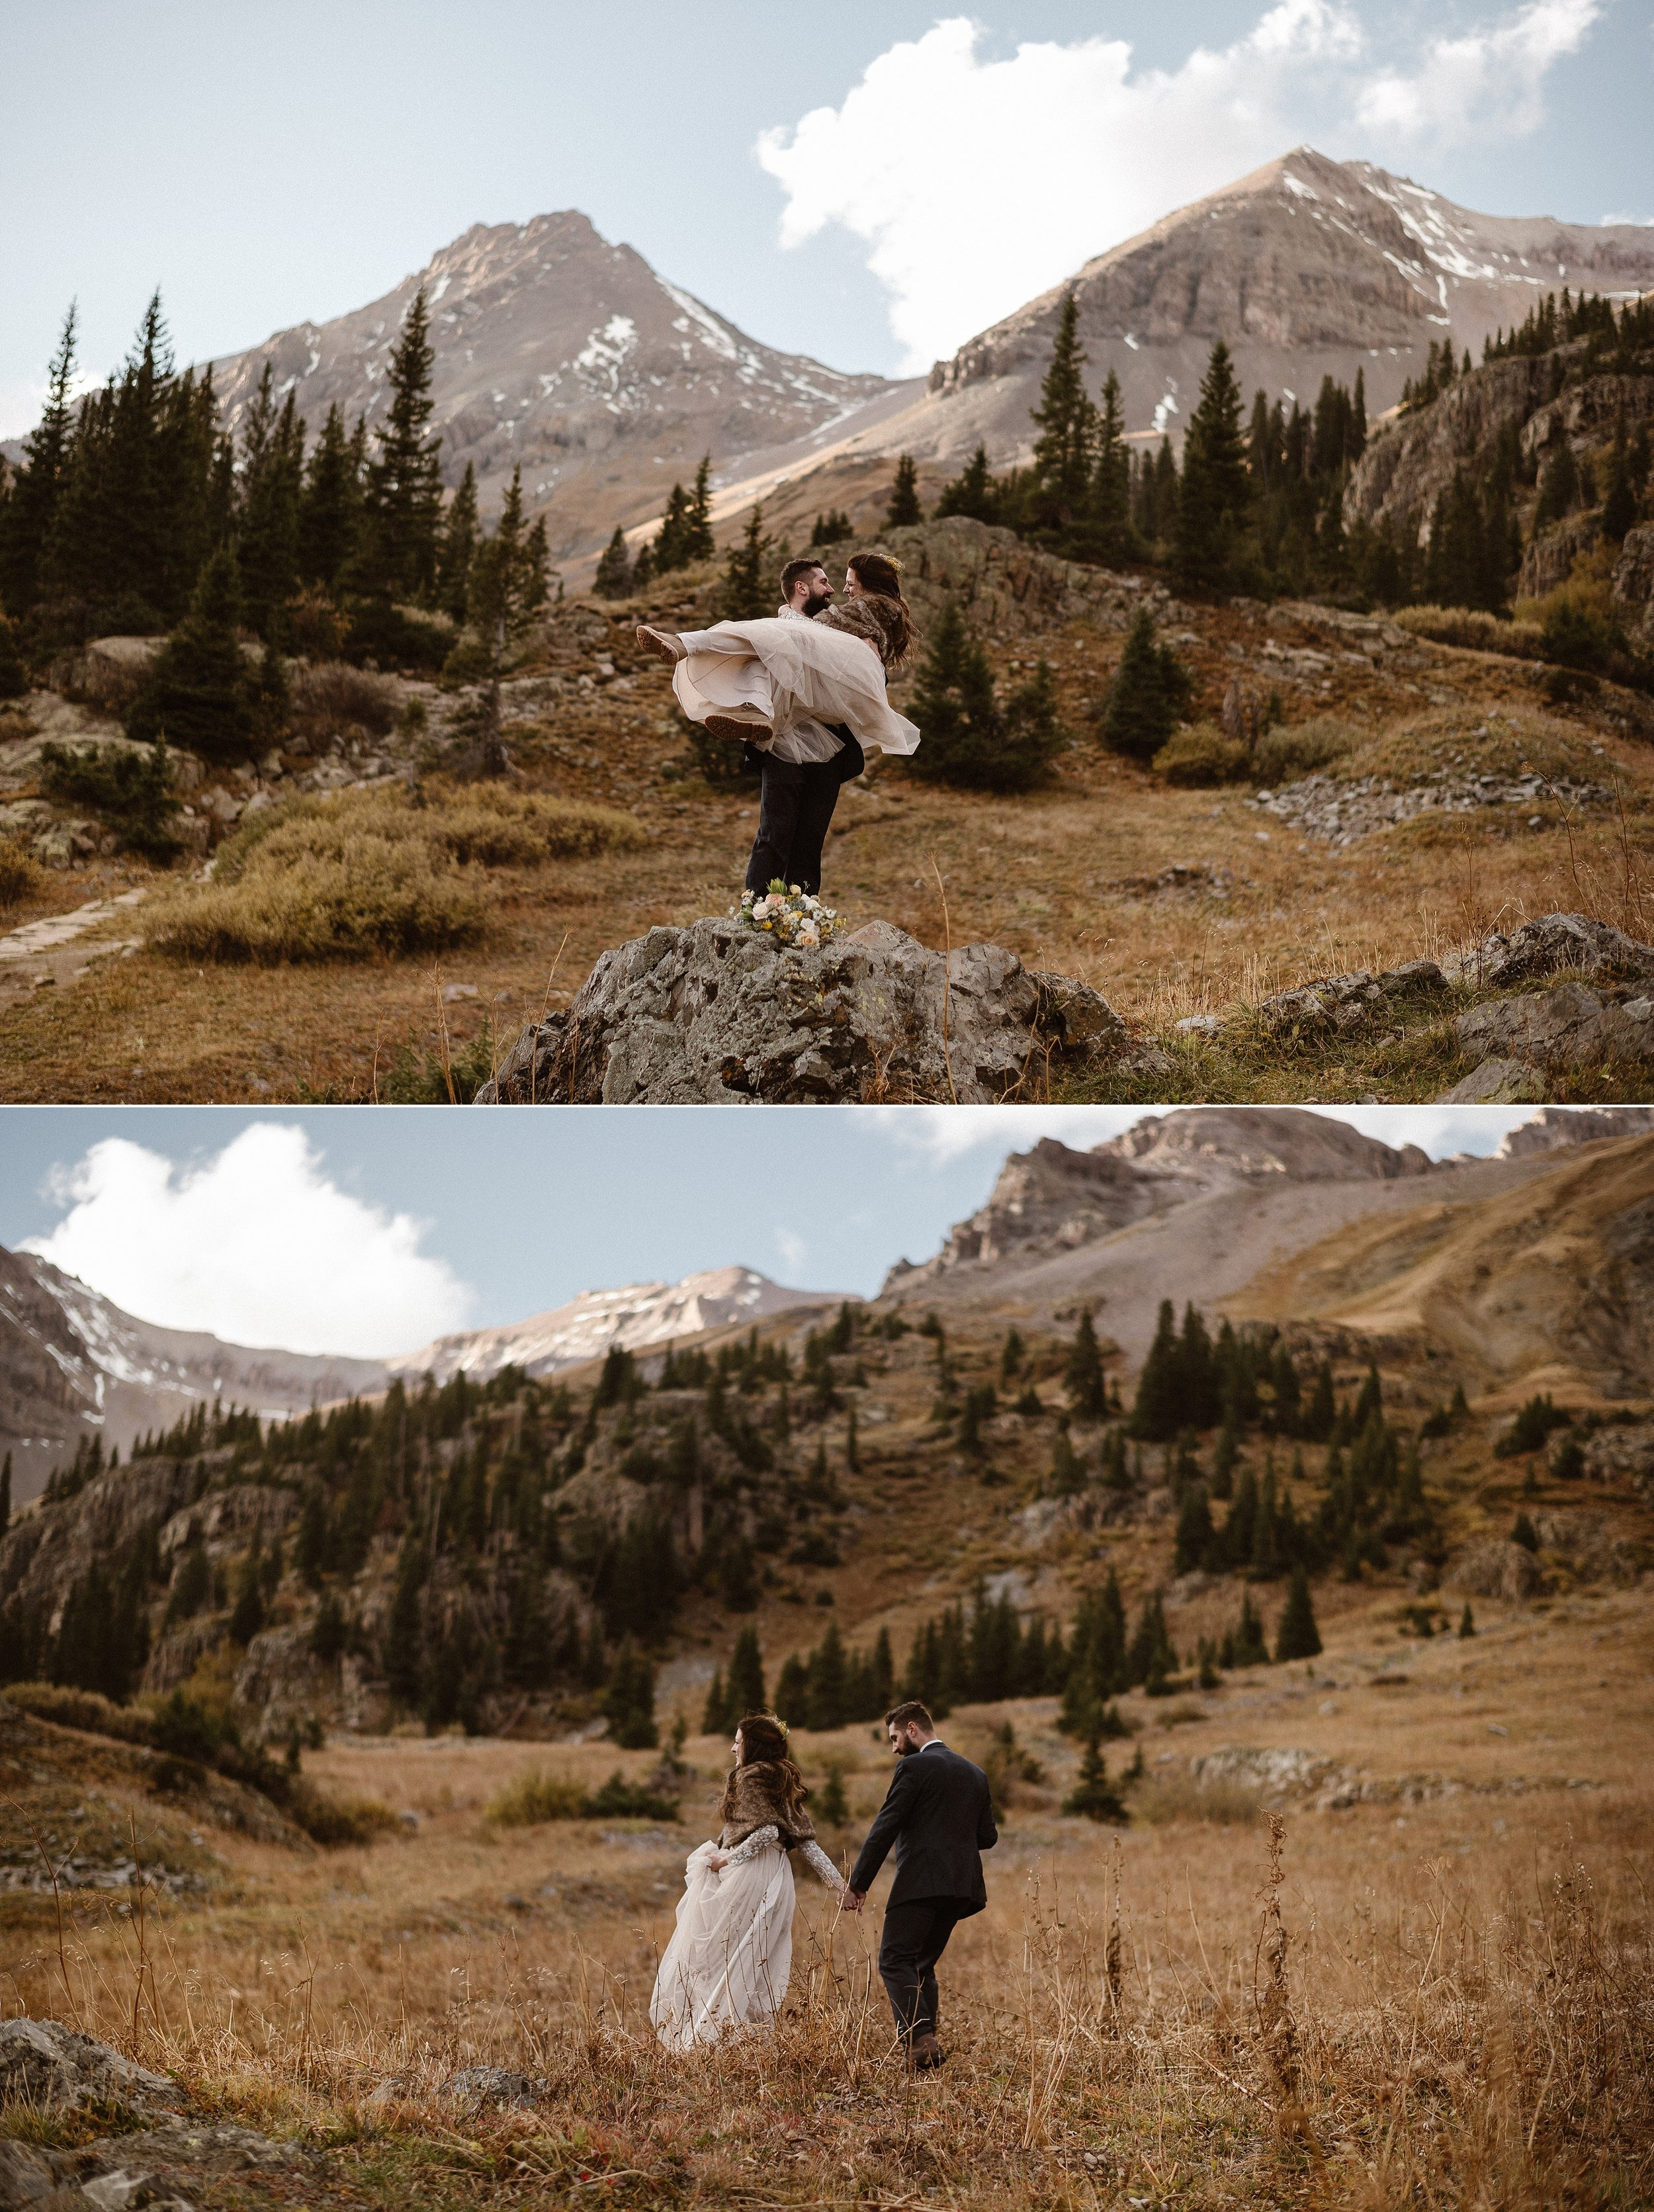 Filled with excitement and romance, Dan swooped his bride literally off her feet in as they stood atop a rock in Yankee Boy Basin. Surrounded by the tall meadow grass and the jagged San Juan Mountains, they had said their intimate elopement vows in private with only their traveling elopement photographer Maddie Mae around for miles.